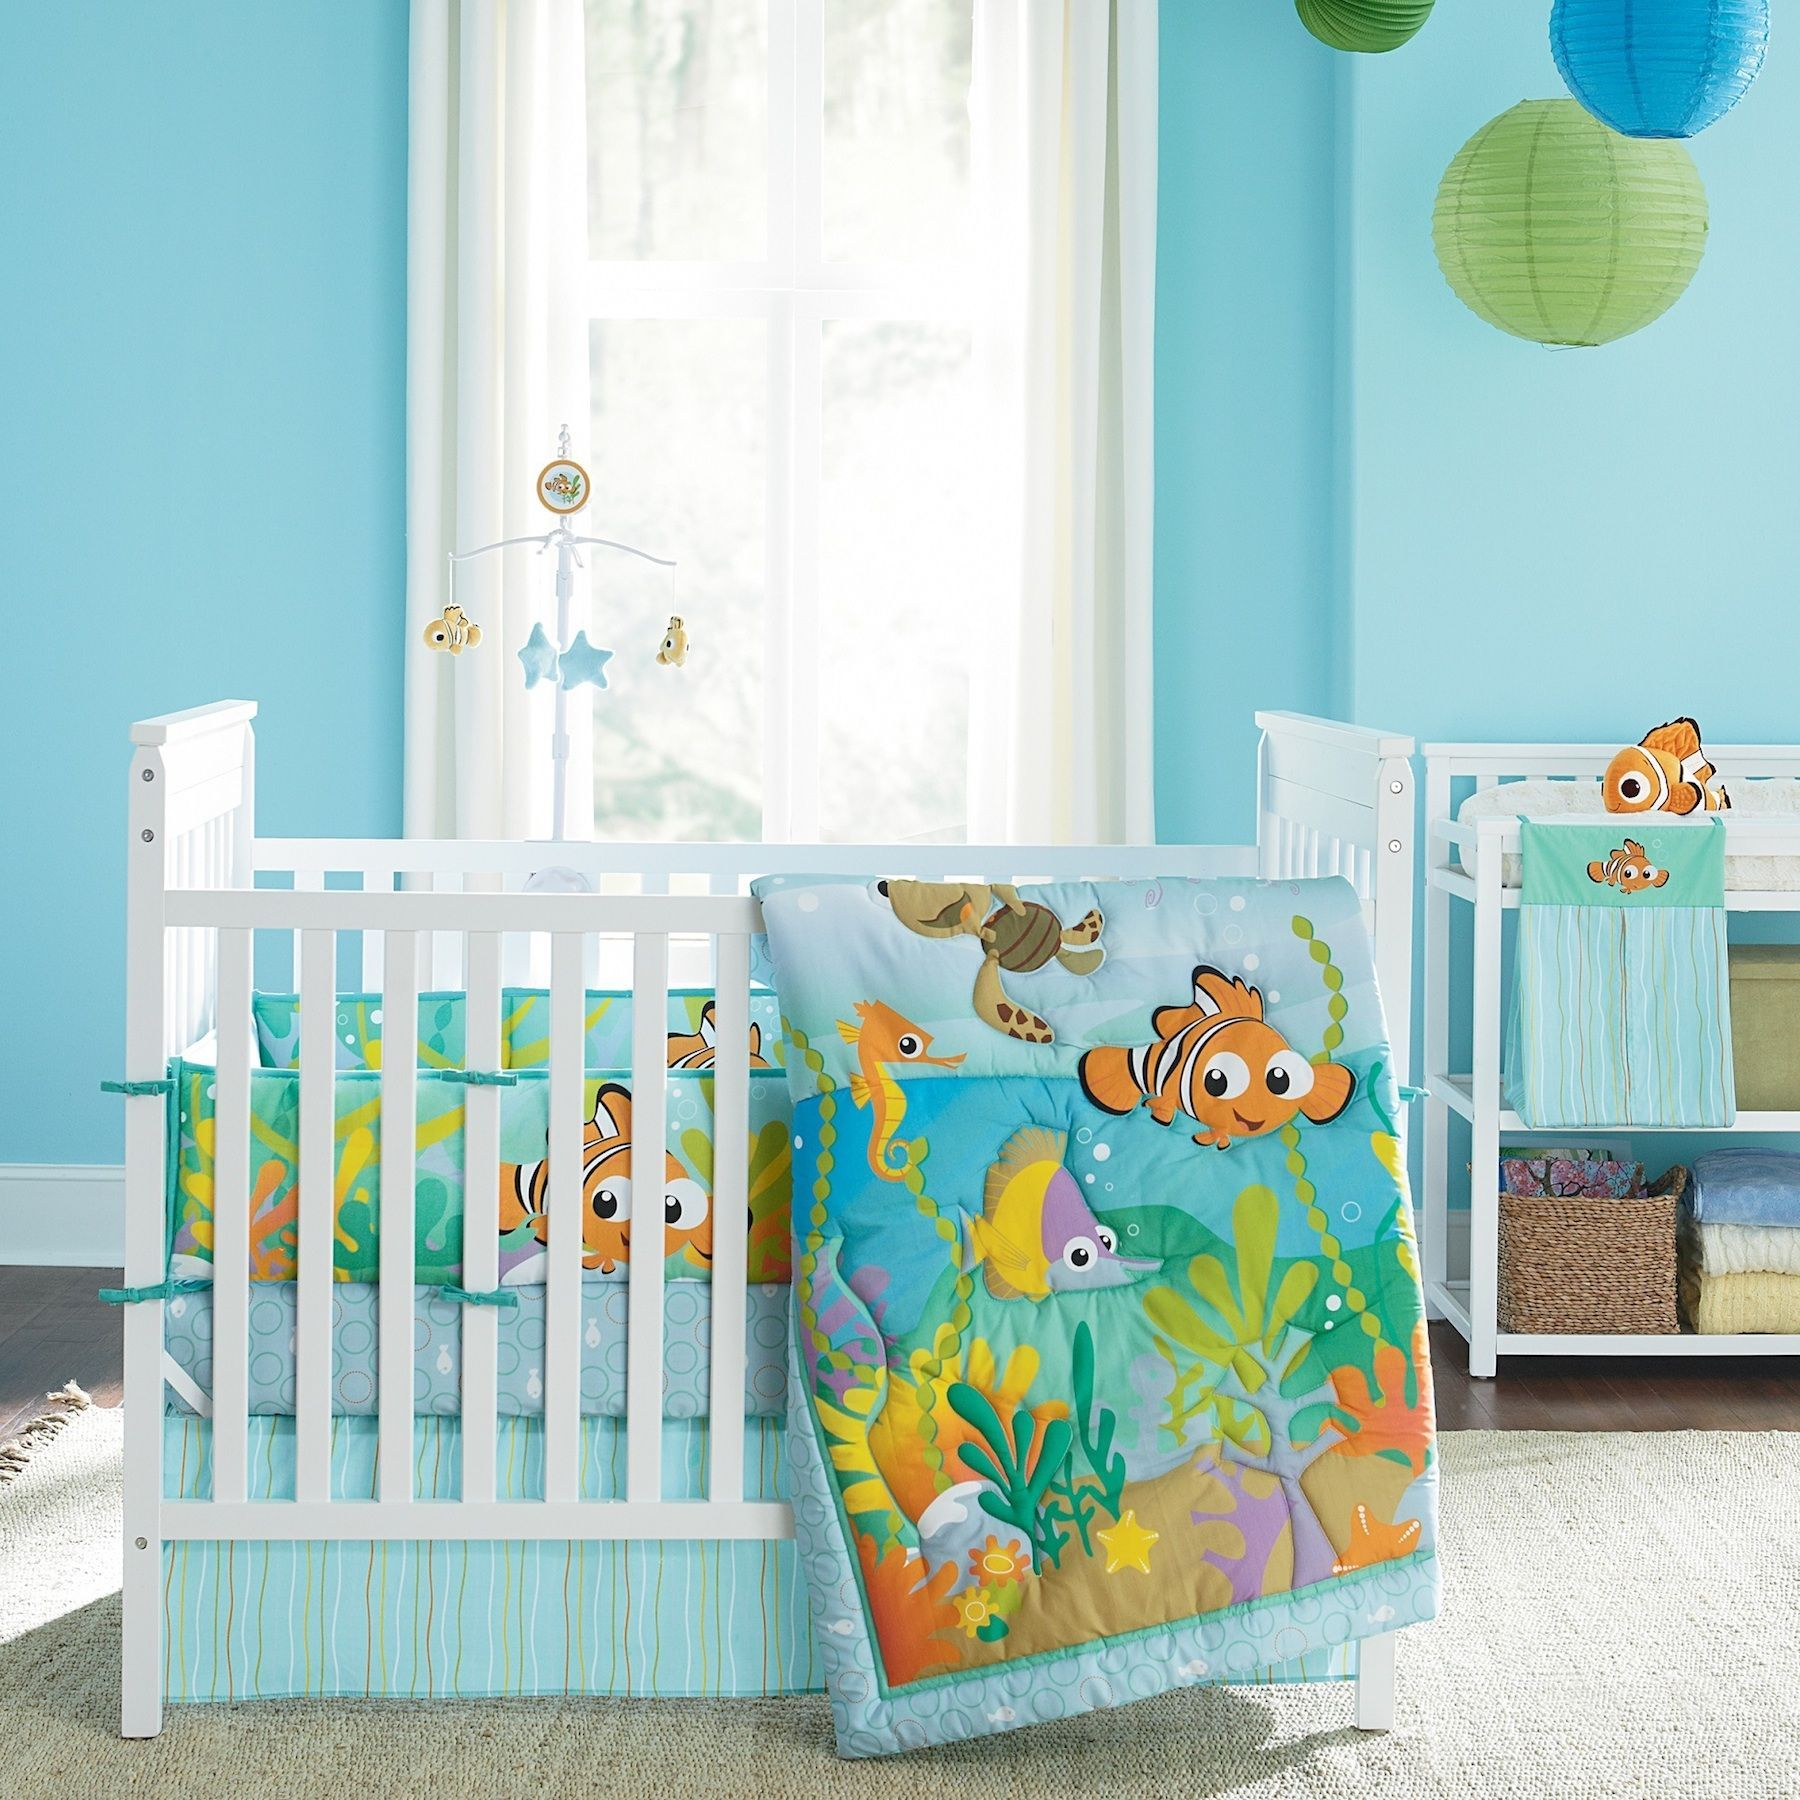 Nursery Room With Finding Nemo Baby Bedding Theme Check More At Http